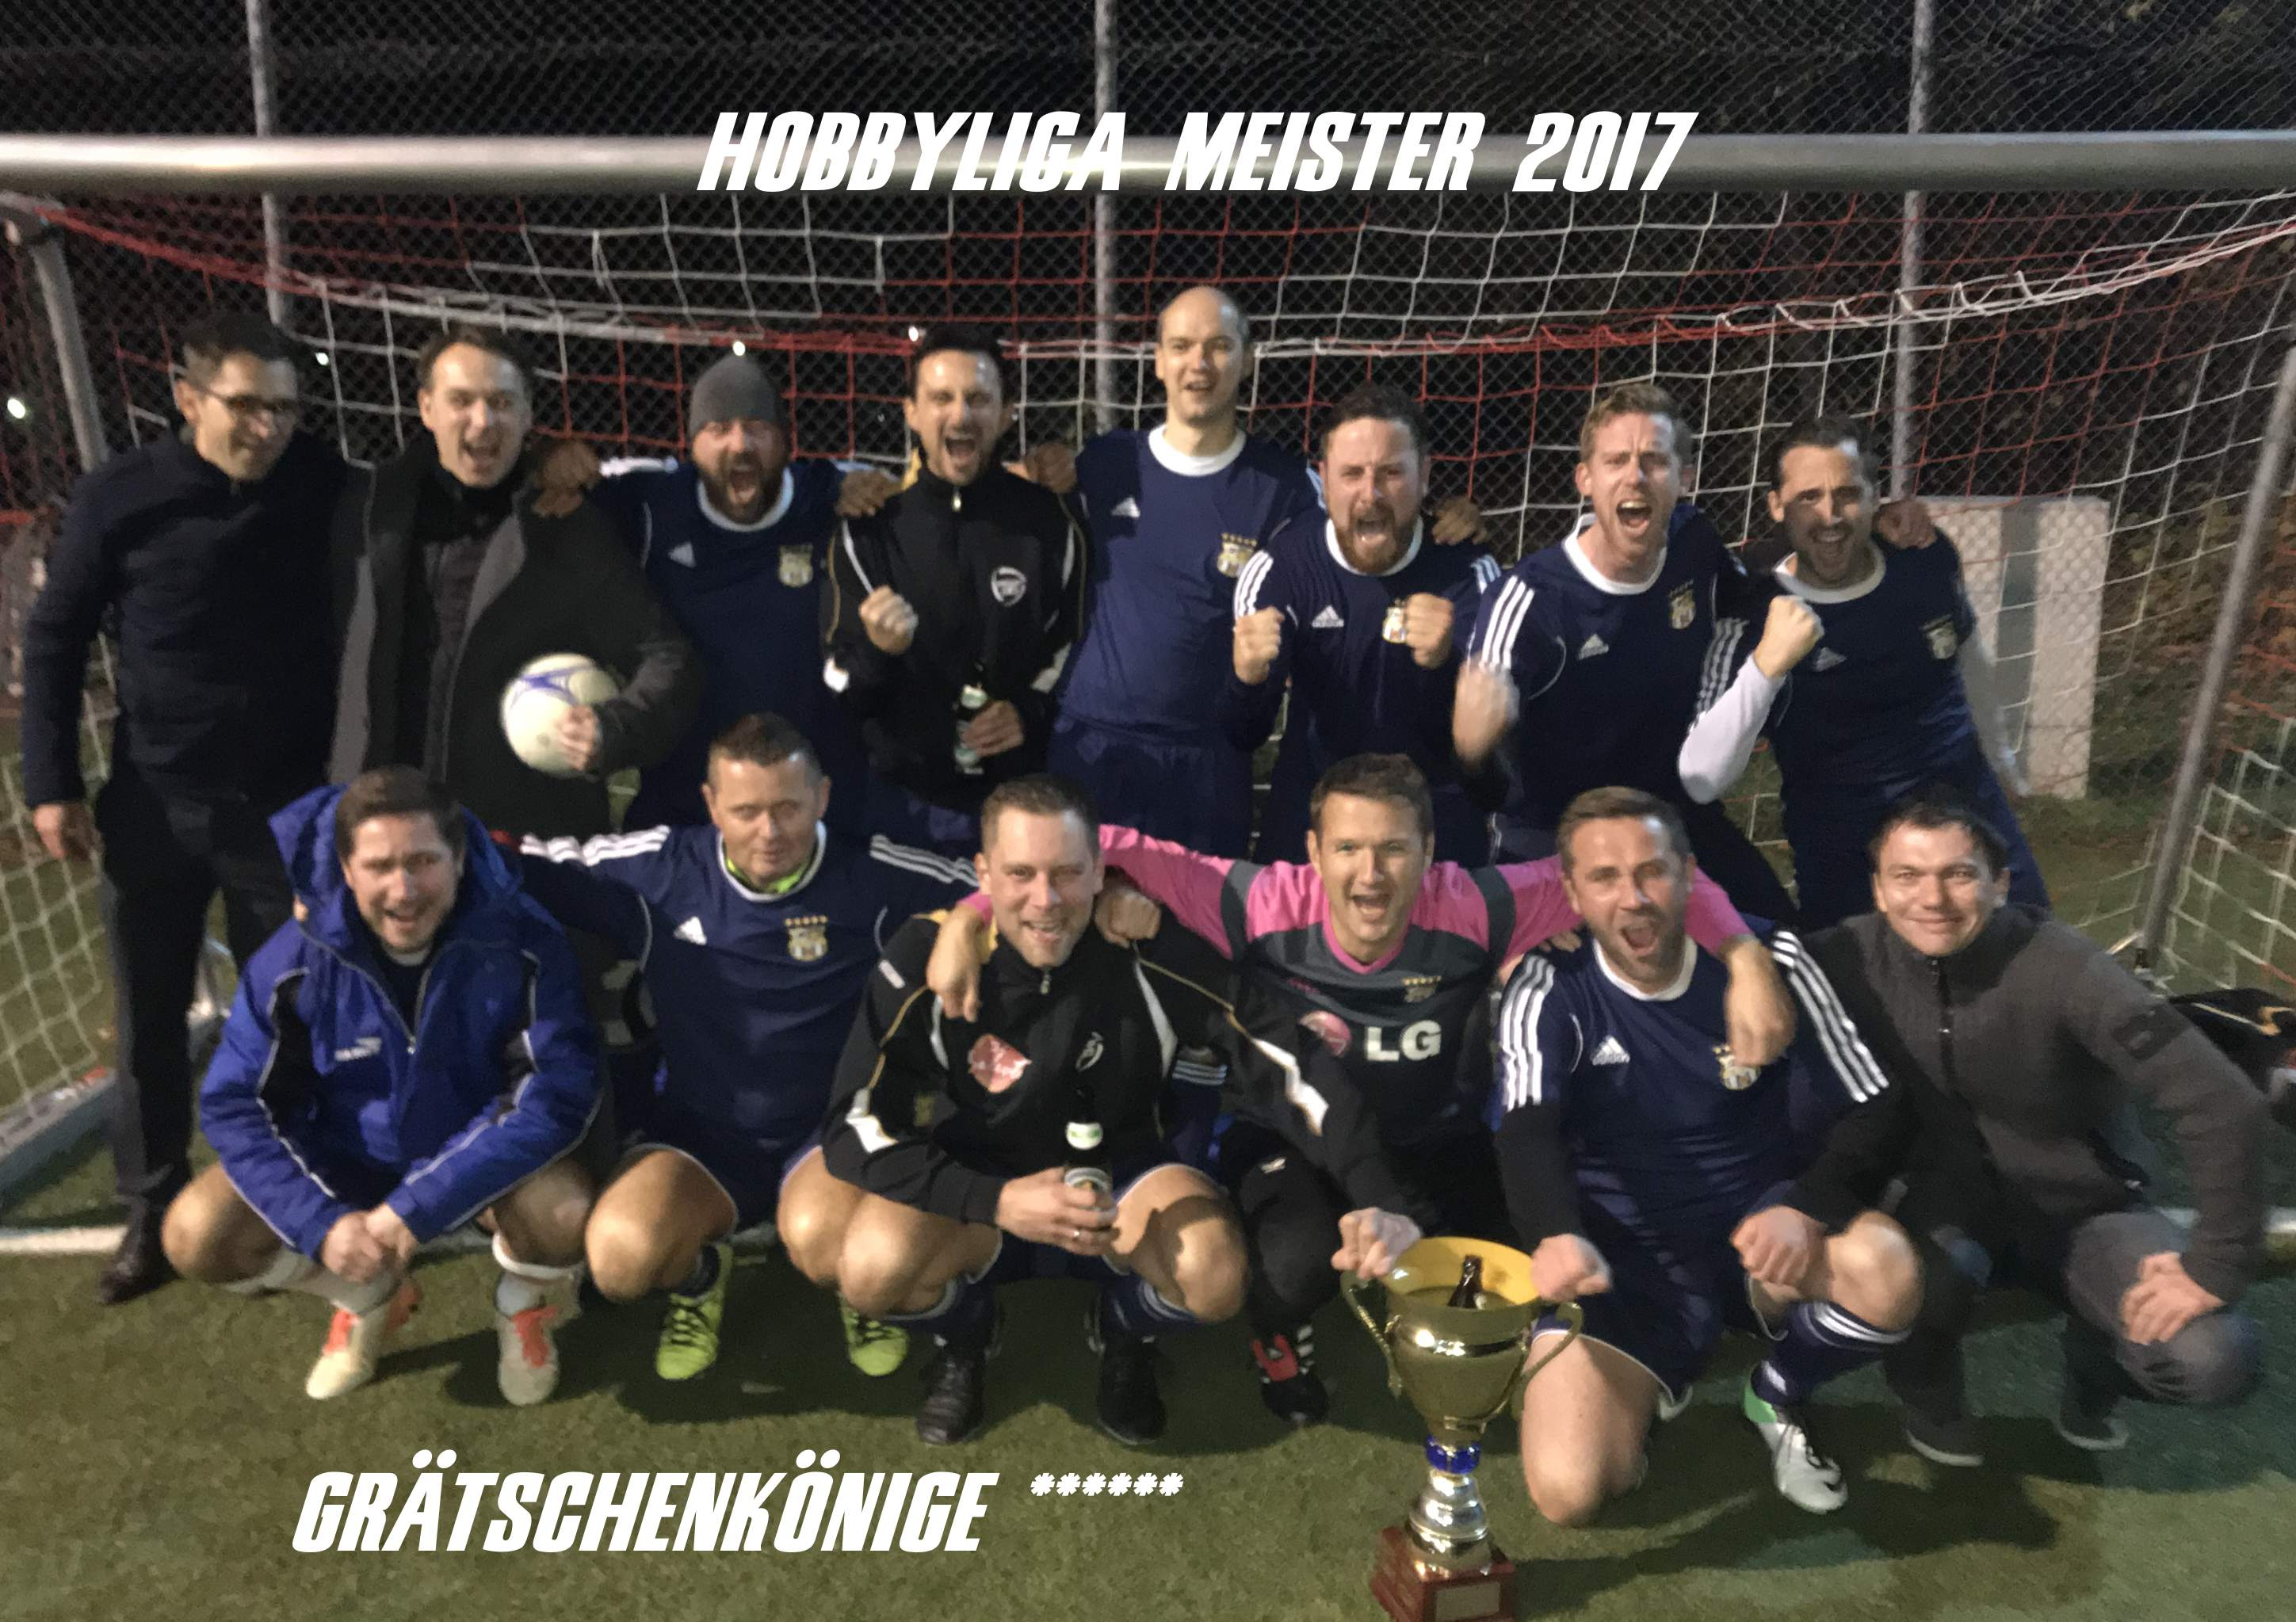 Meister - 2017!